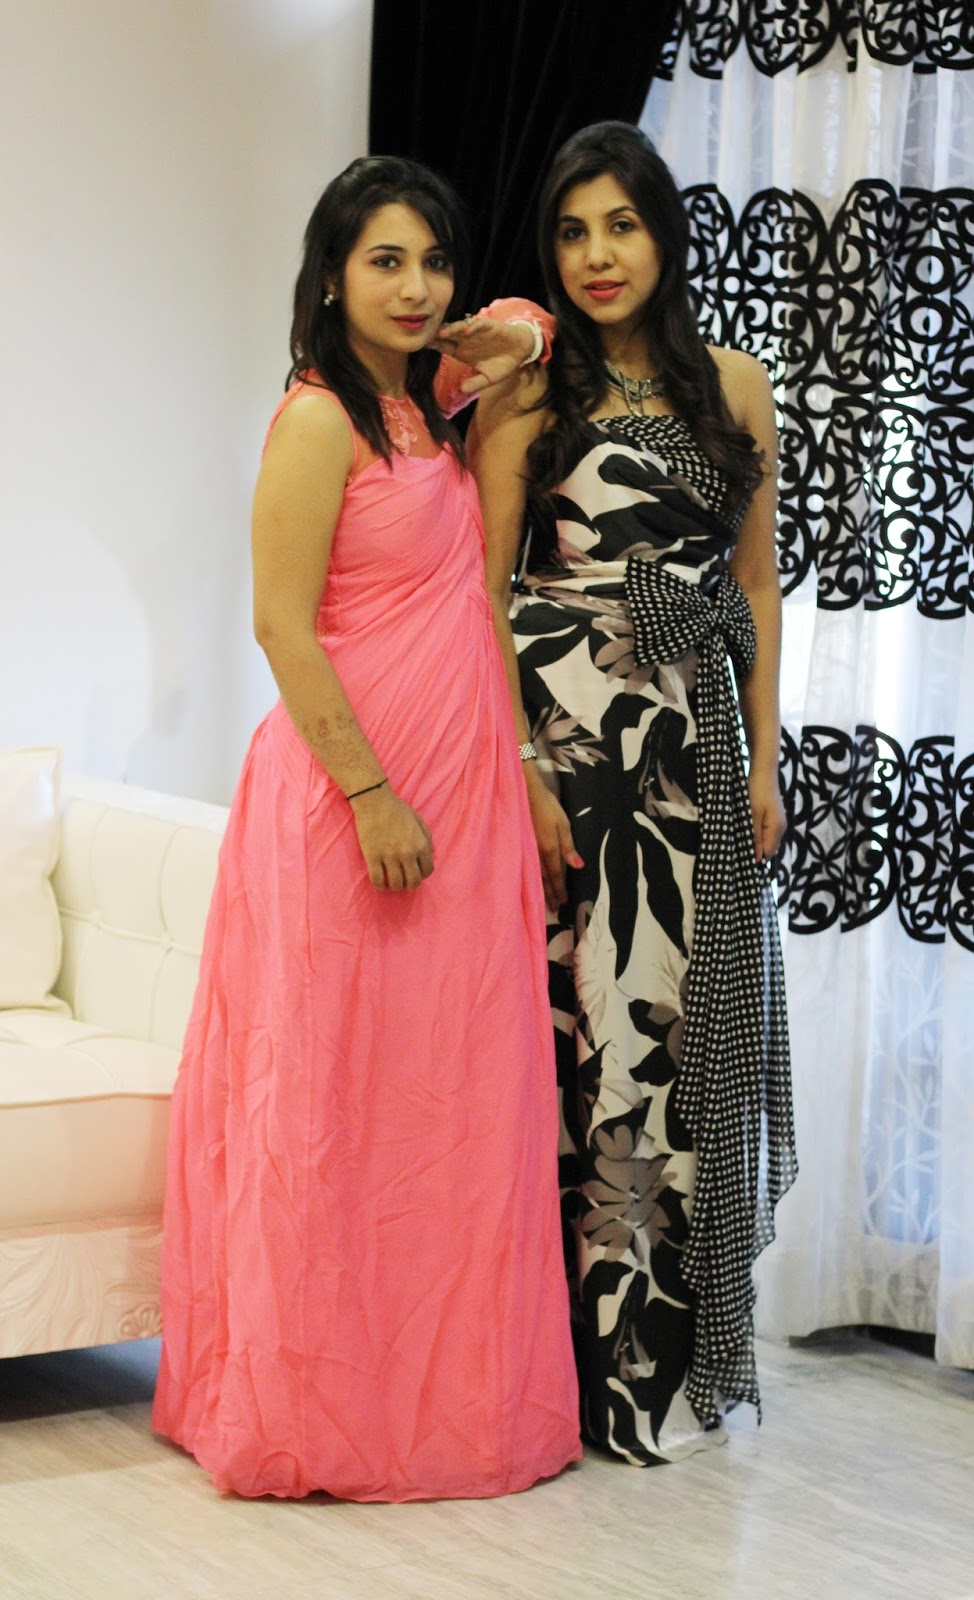 red carpet look, indian girls with long gowns, peach gown, black and white gown,